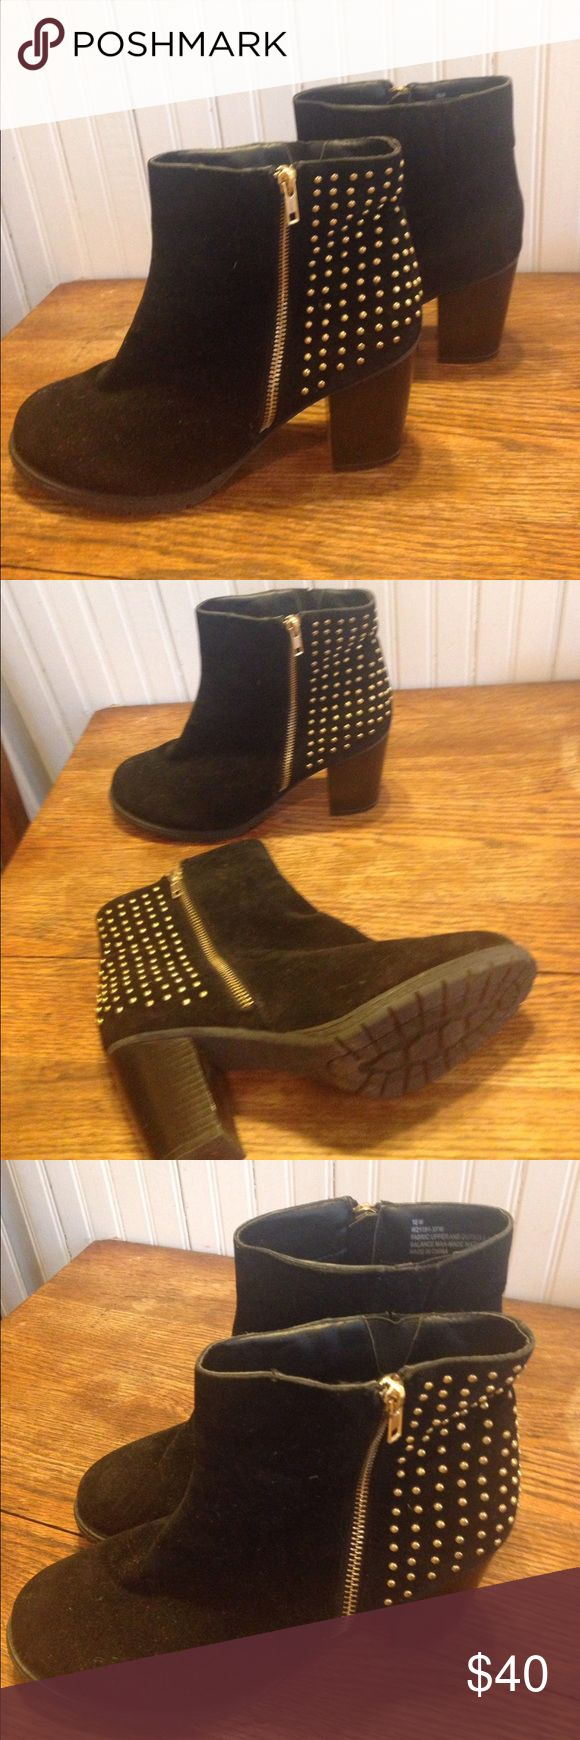 """Ashley Stewart black and gold boots size 10 Ashley Stewart black and gold boots size 10, gold tone studs, gold tone zipper, man made materials, 3.5"""" heel , good condition Ashley Stewart Shoes Heeled Boots"""